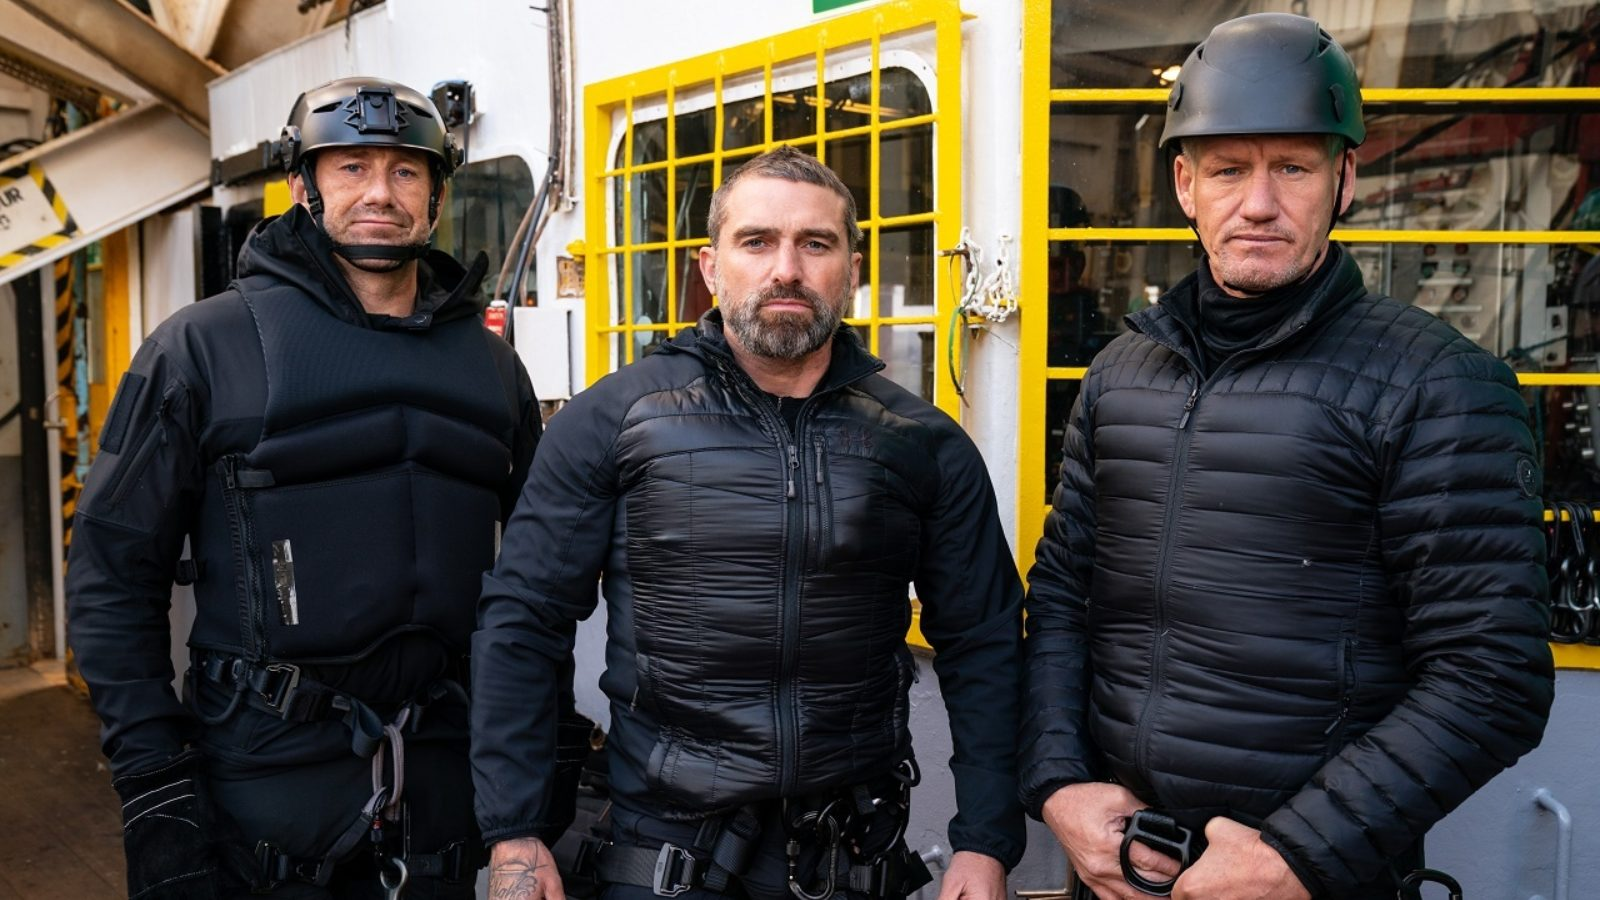 Top channel 4 series 'SAS: Who Dares Wins' uses Aberdeen decommissioning company to film rig-based task for its latest series